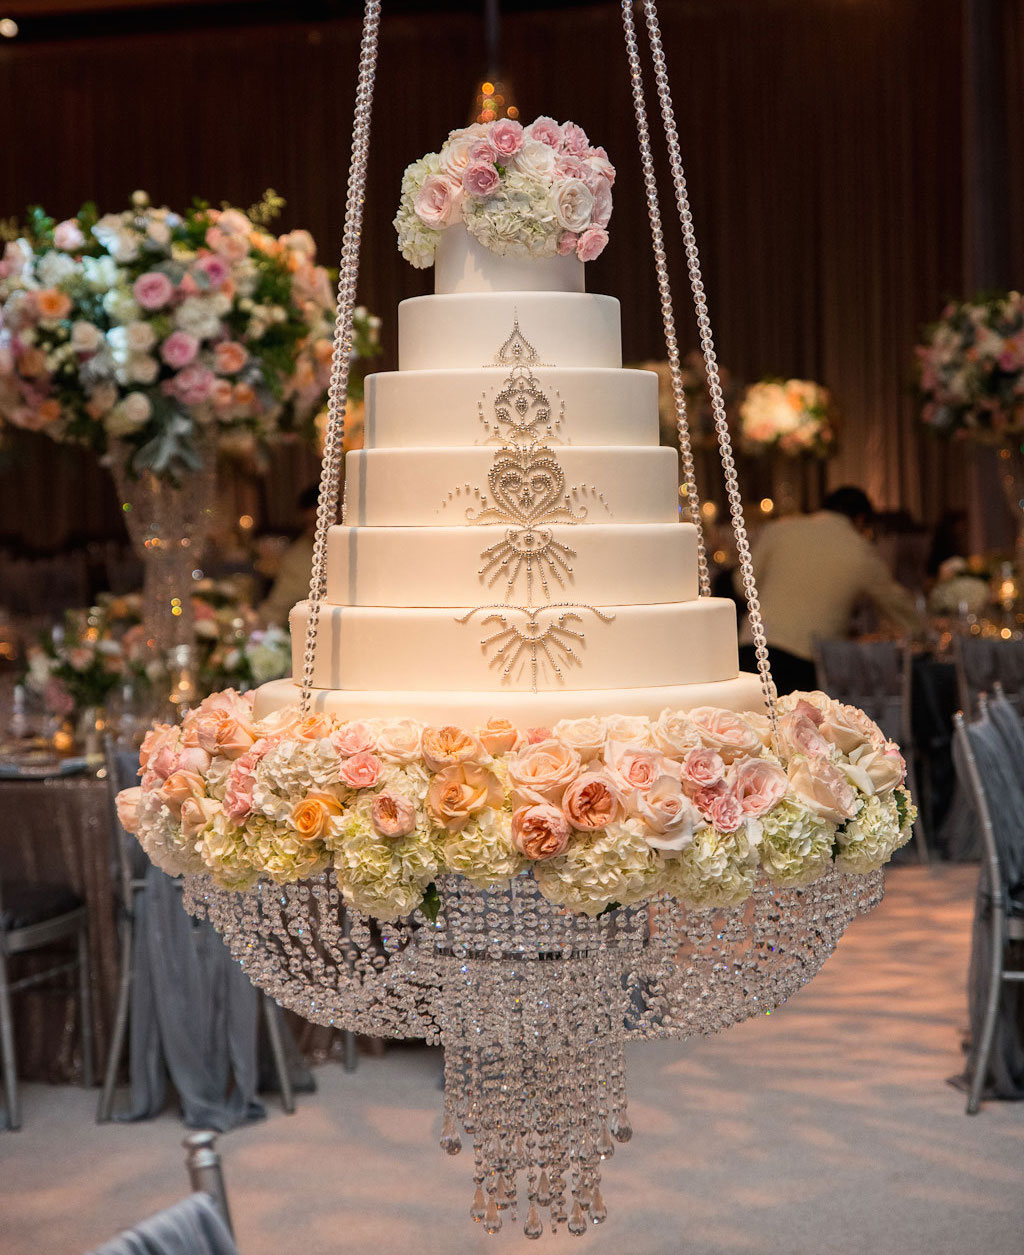 White wedding cake with silver beads on swing at reception